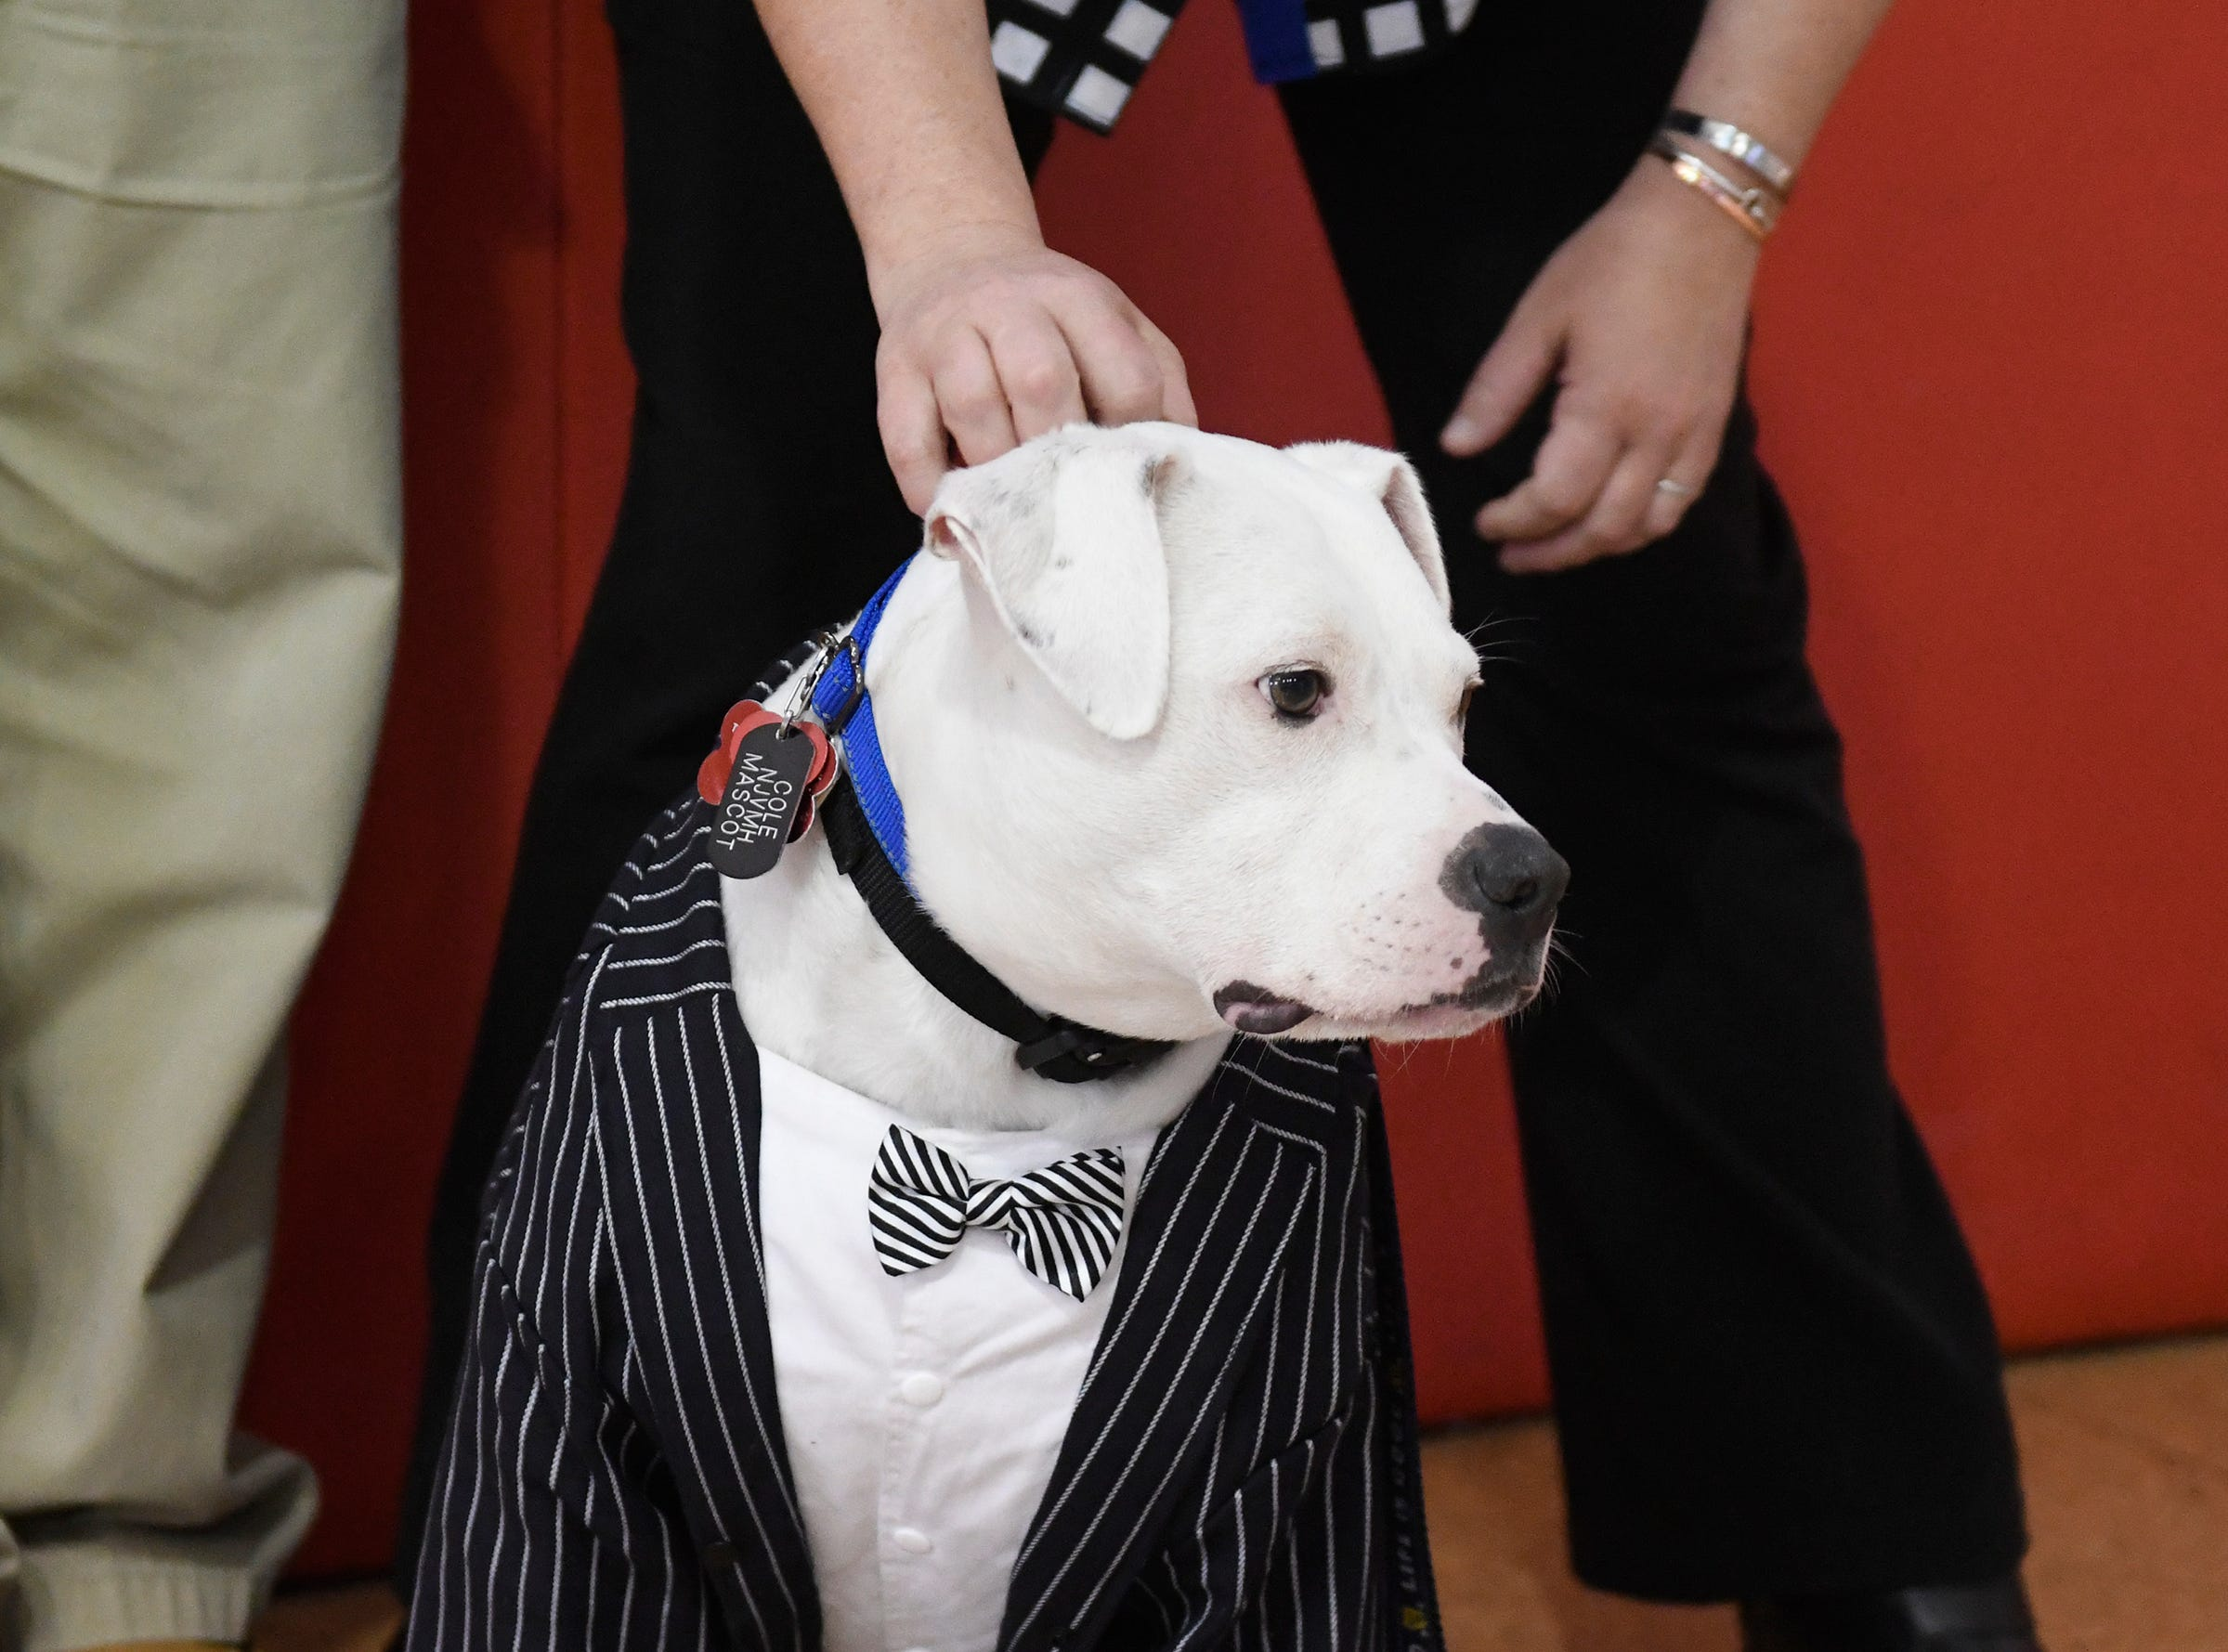 Mennies Elementary School therapy dog Cole attends the Giraffe Hero Award ceremony at the Vineland Public School District Administrative Offices on Wednesday, May 15, 2019.